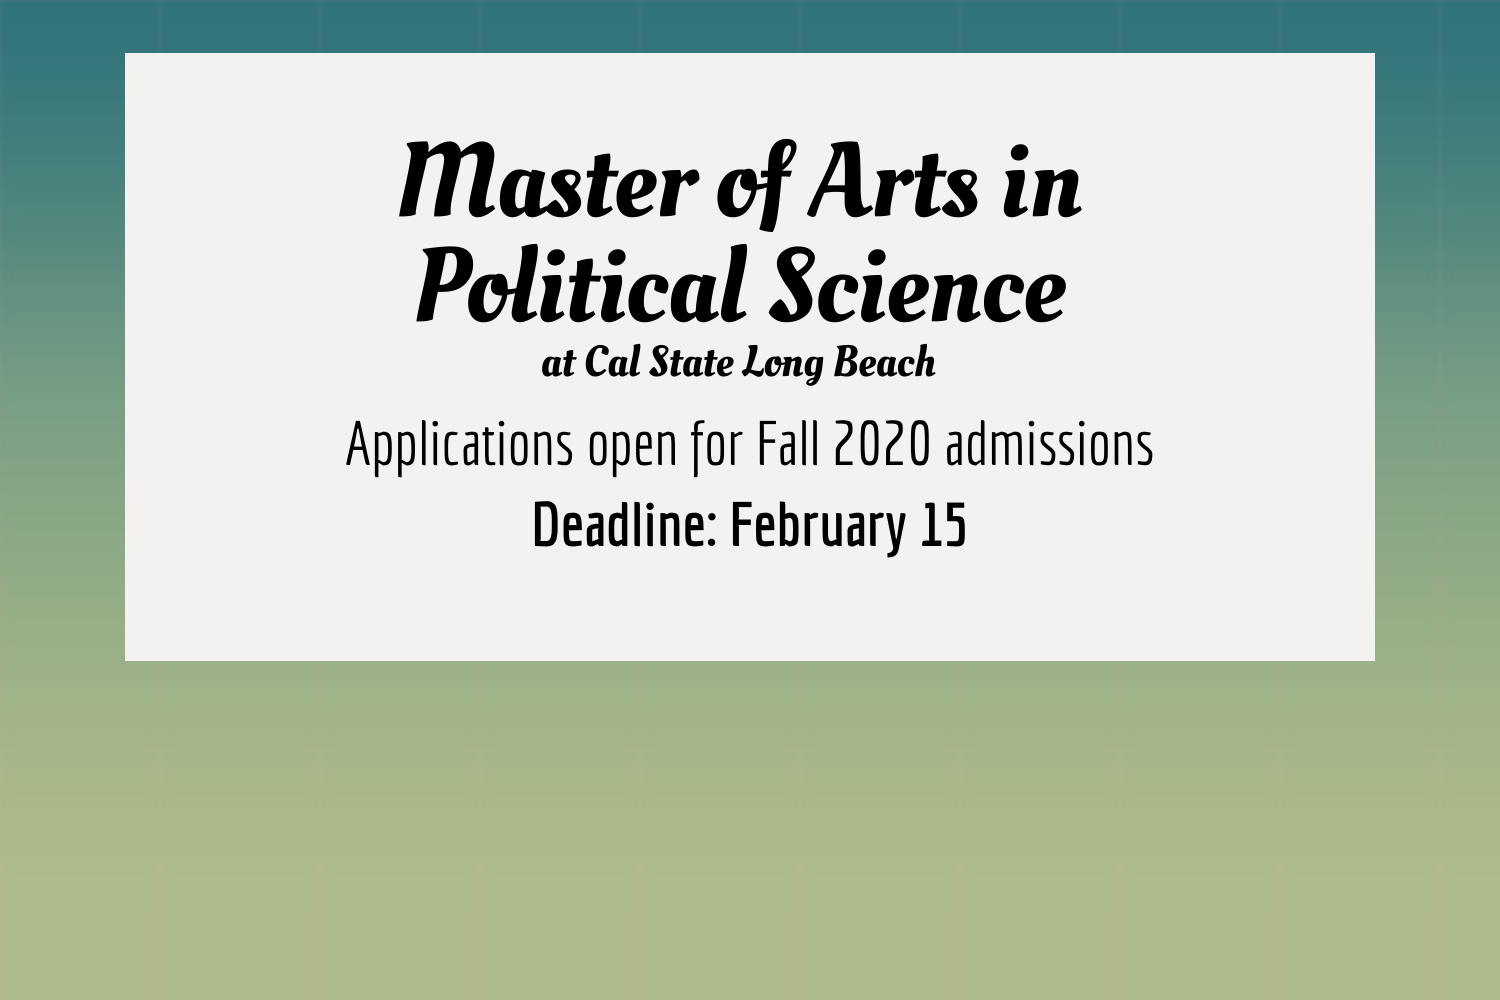 MA Program Fall 2020 application deadline February 15